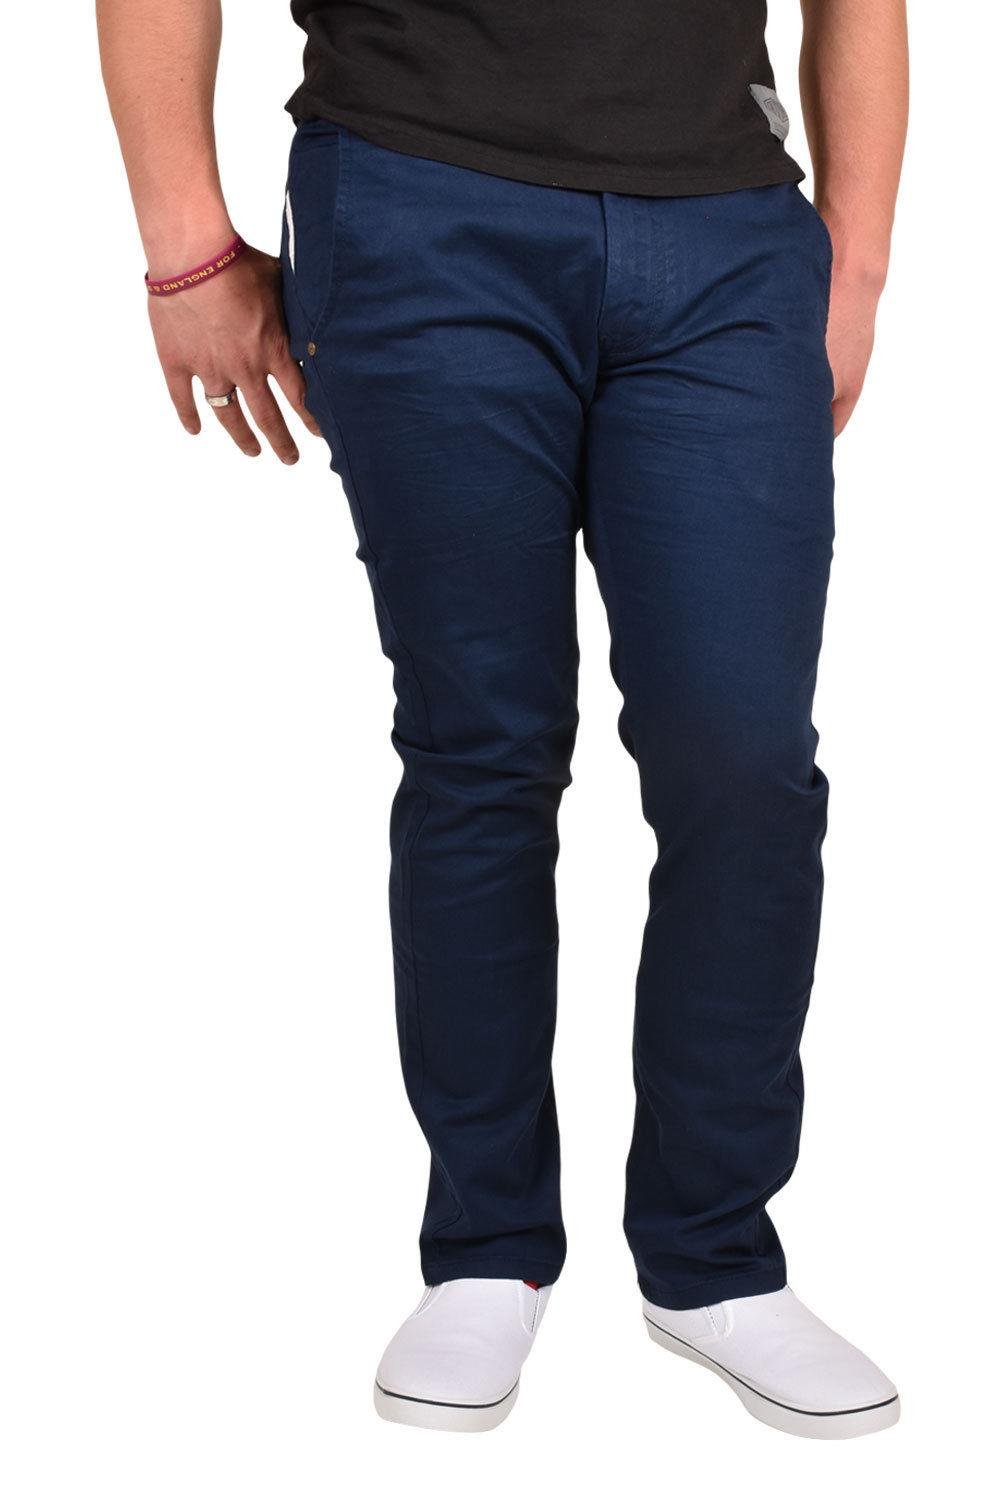 New-Mens-Designer-Jacksouth-Chino-Regular-Fit-Stretch-Cotton-Rich-Twill-Trousers thumbnail 25